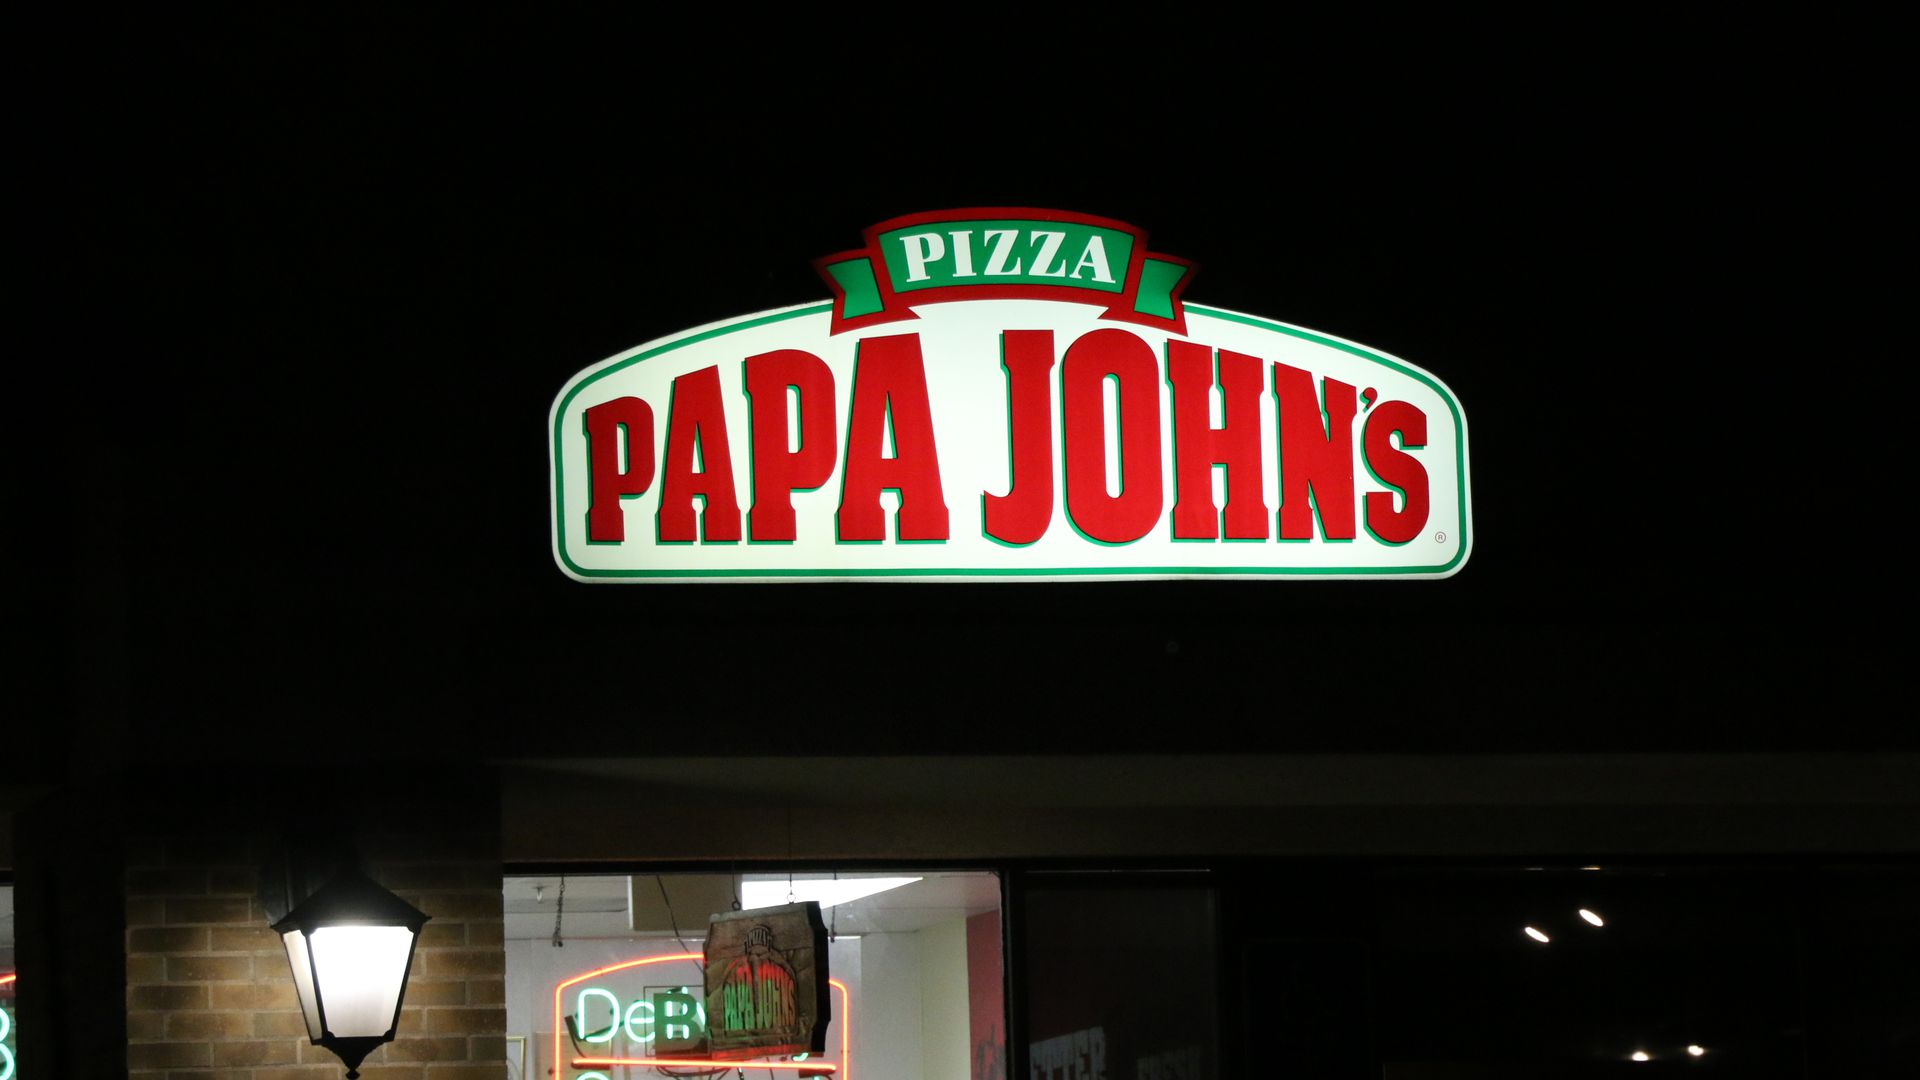 Neon sign of Papa John's pizza